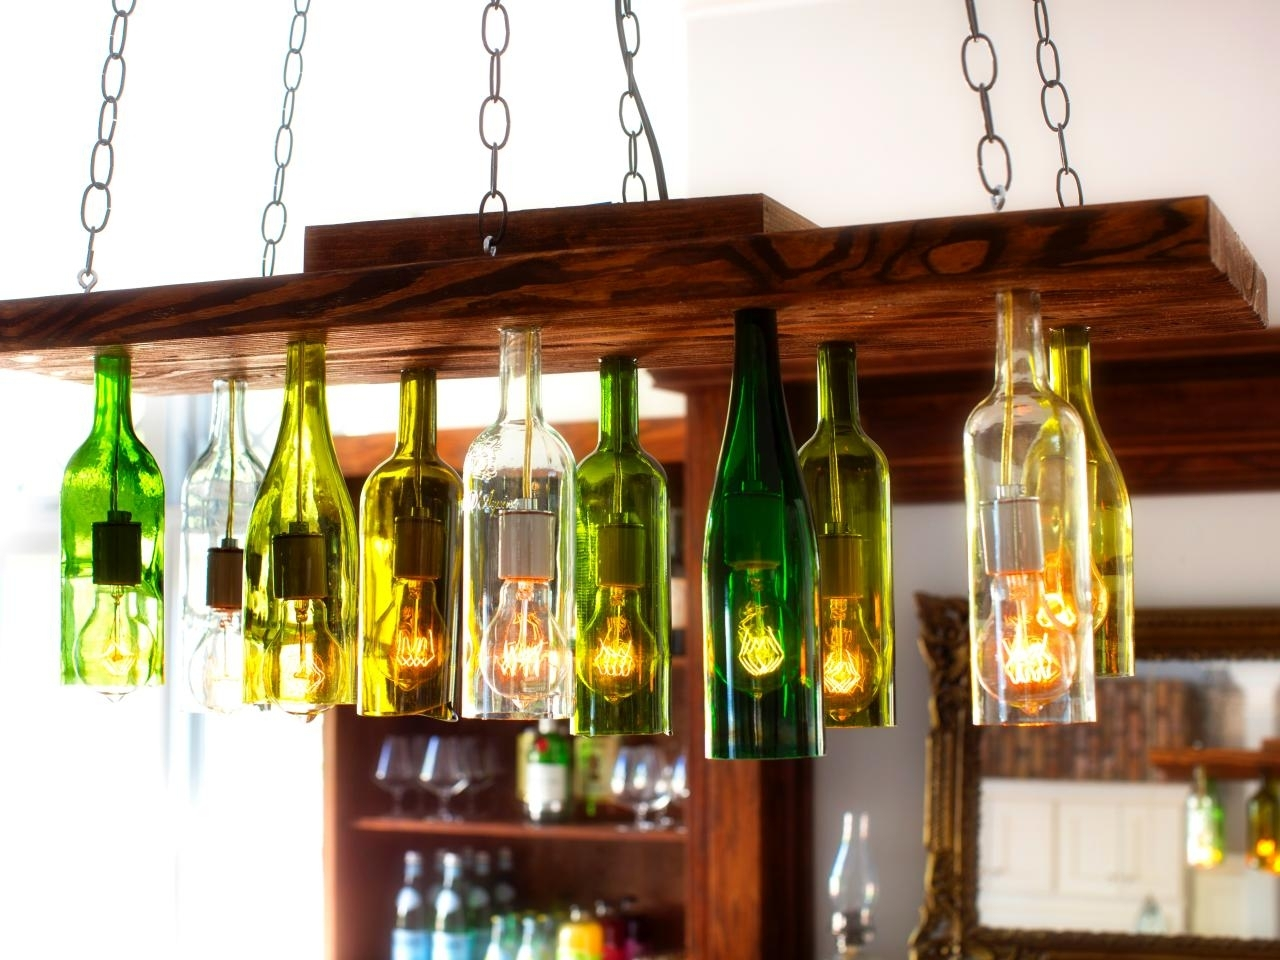 How To Make A Chandelier From Old Wine Bottles | How Tos | Diy With Regard To Making Outdoor Hanging Lights From Wine Bottles (#9 of 15)